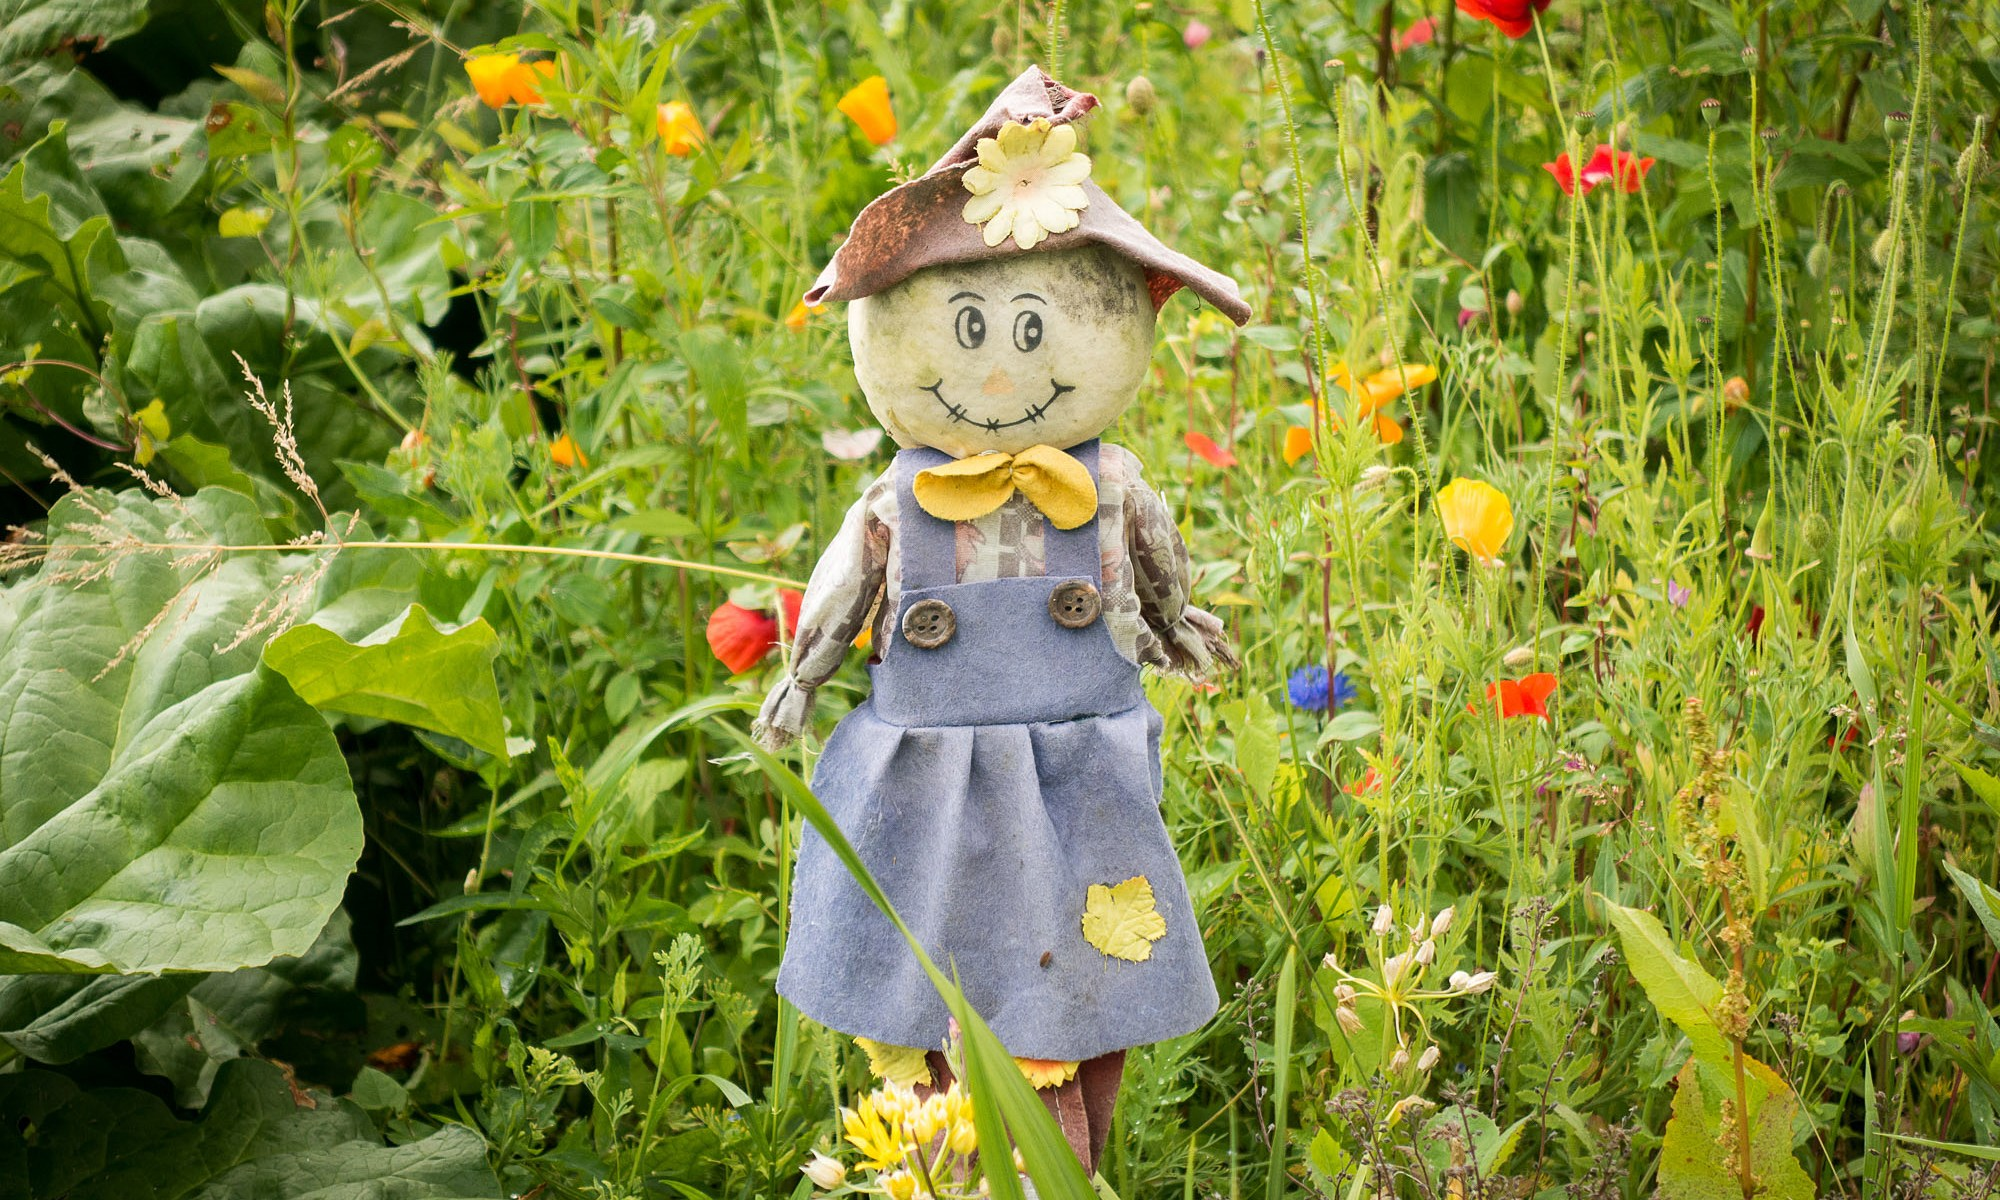 Homemade scarecrow doll